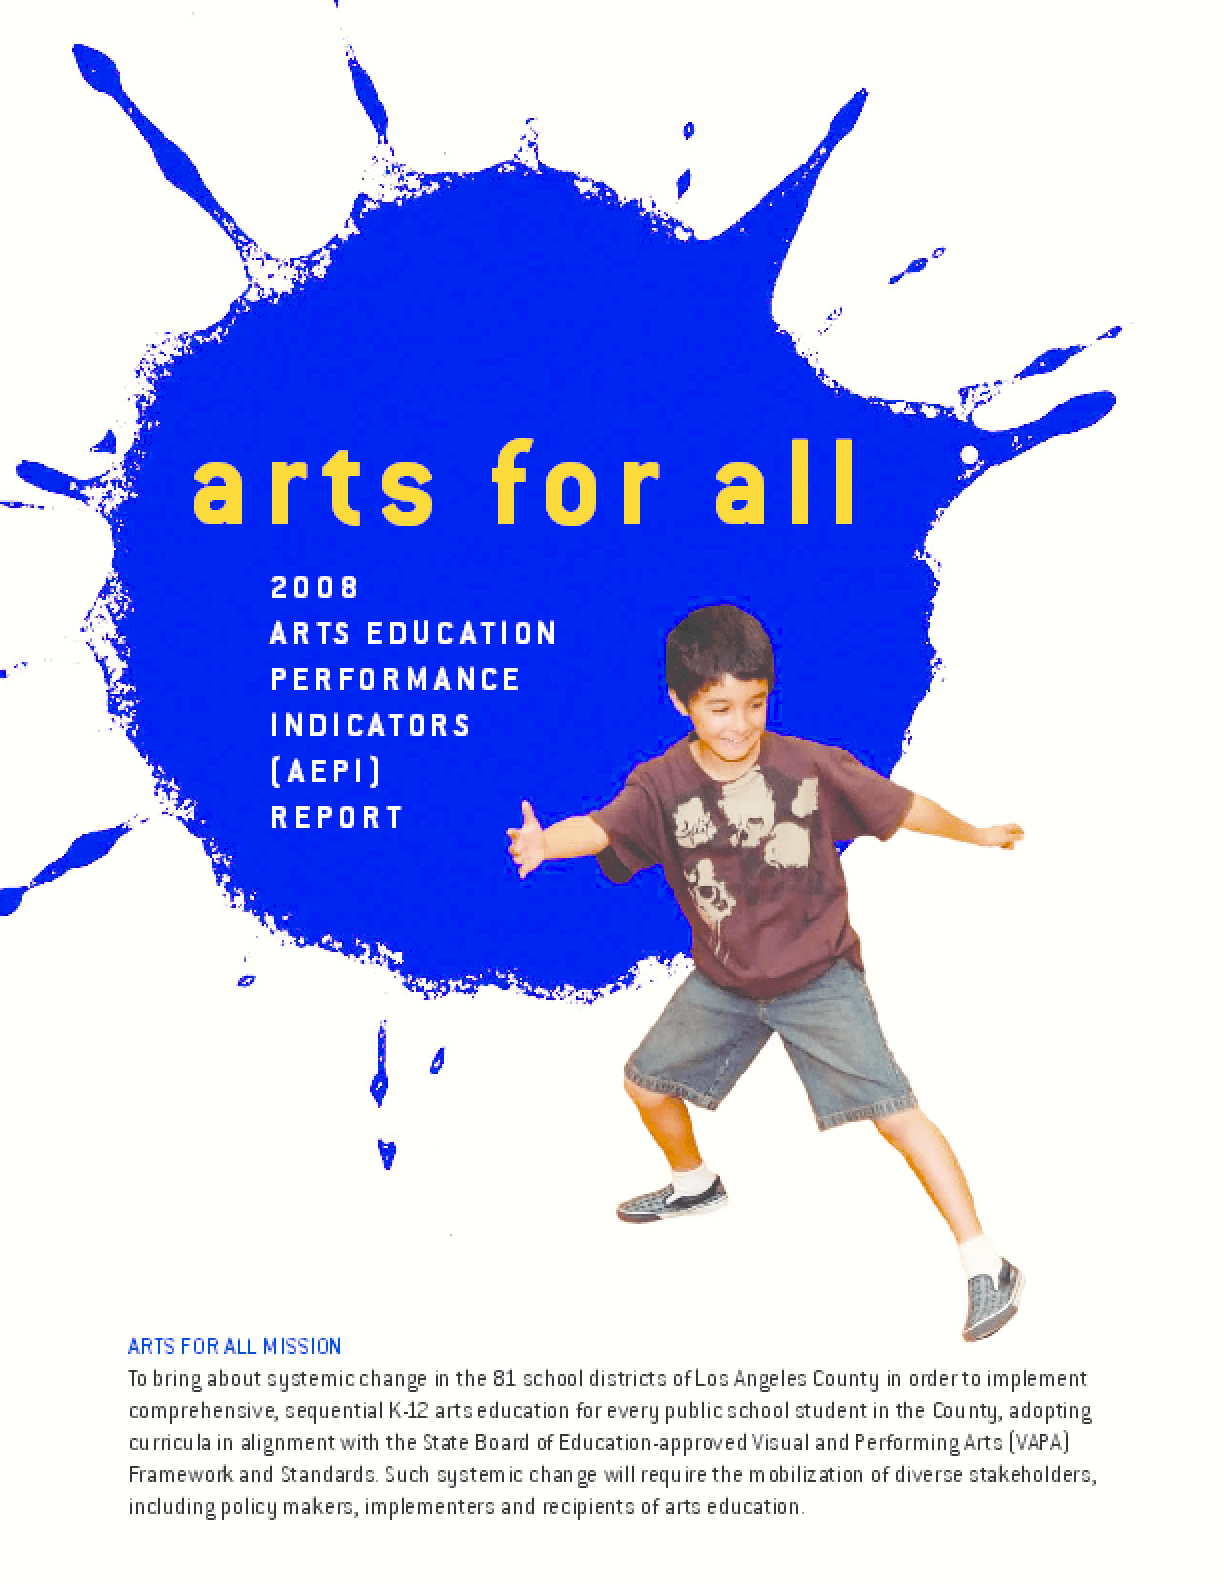 2008 Arts Education Performance Indicators Report